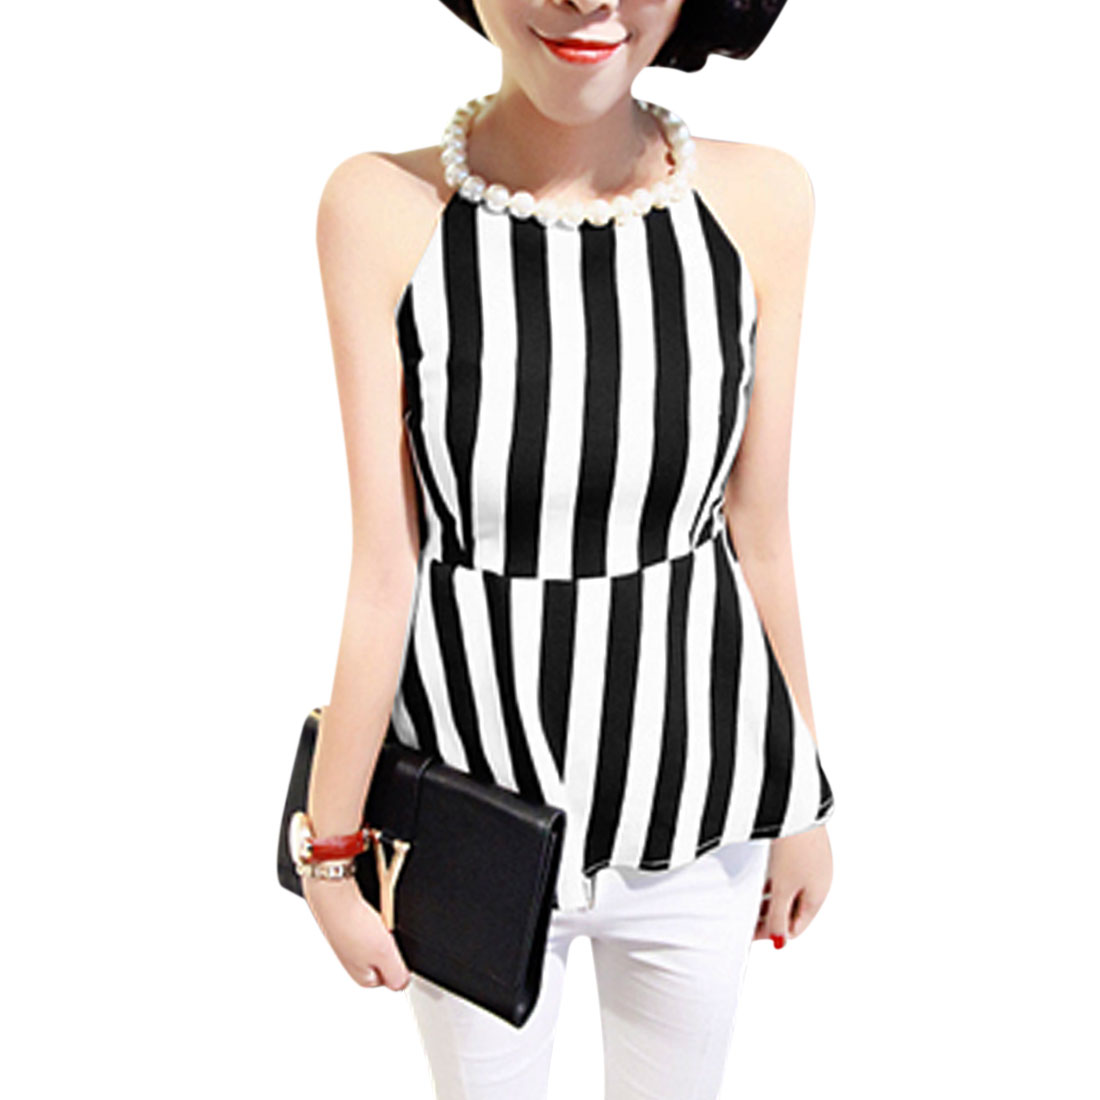 Woman Fake Pearl Necklace Decor Vertical Striped Black White Peplum Tops XS